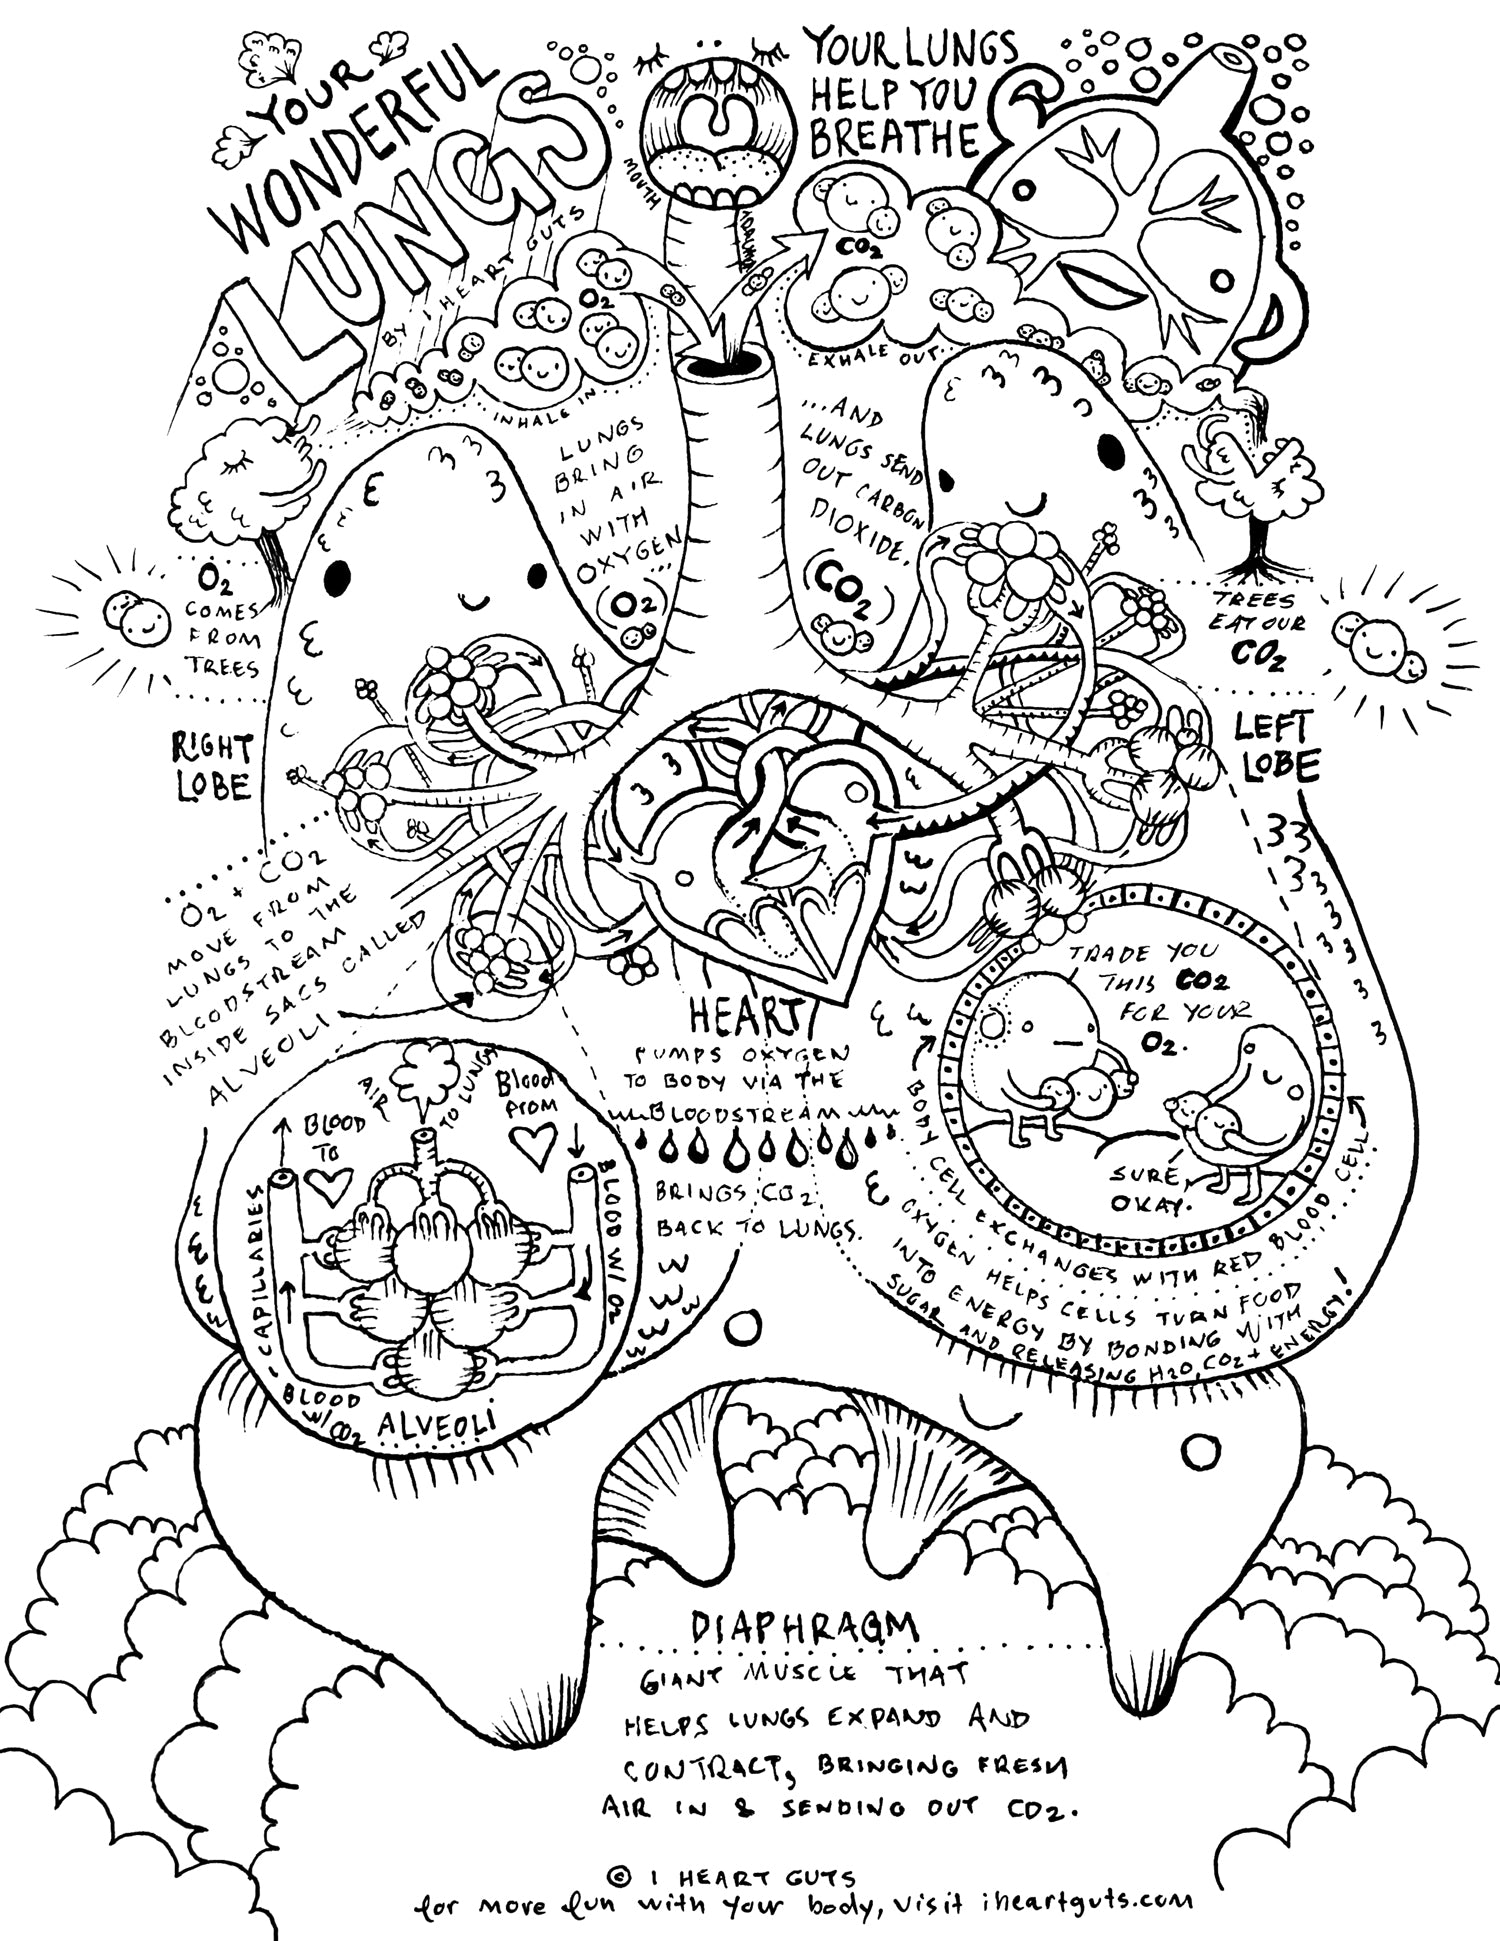 respiratory system coloring page by i heart guts